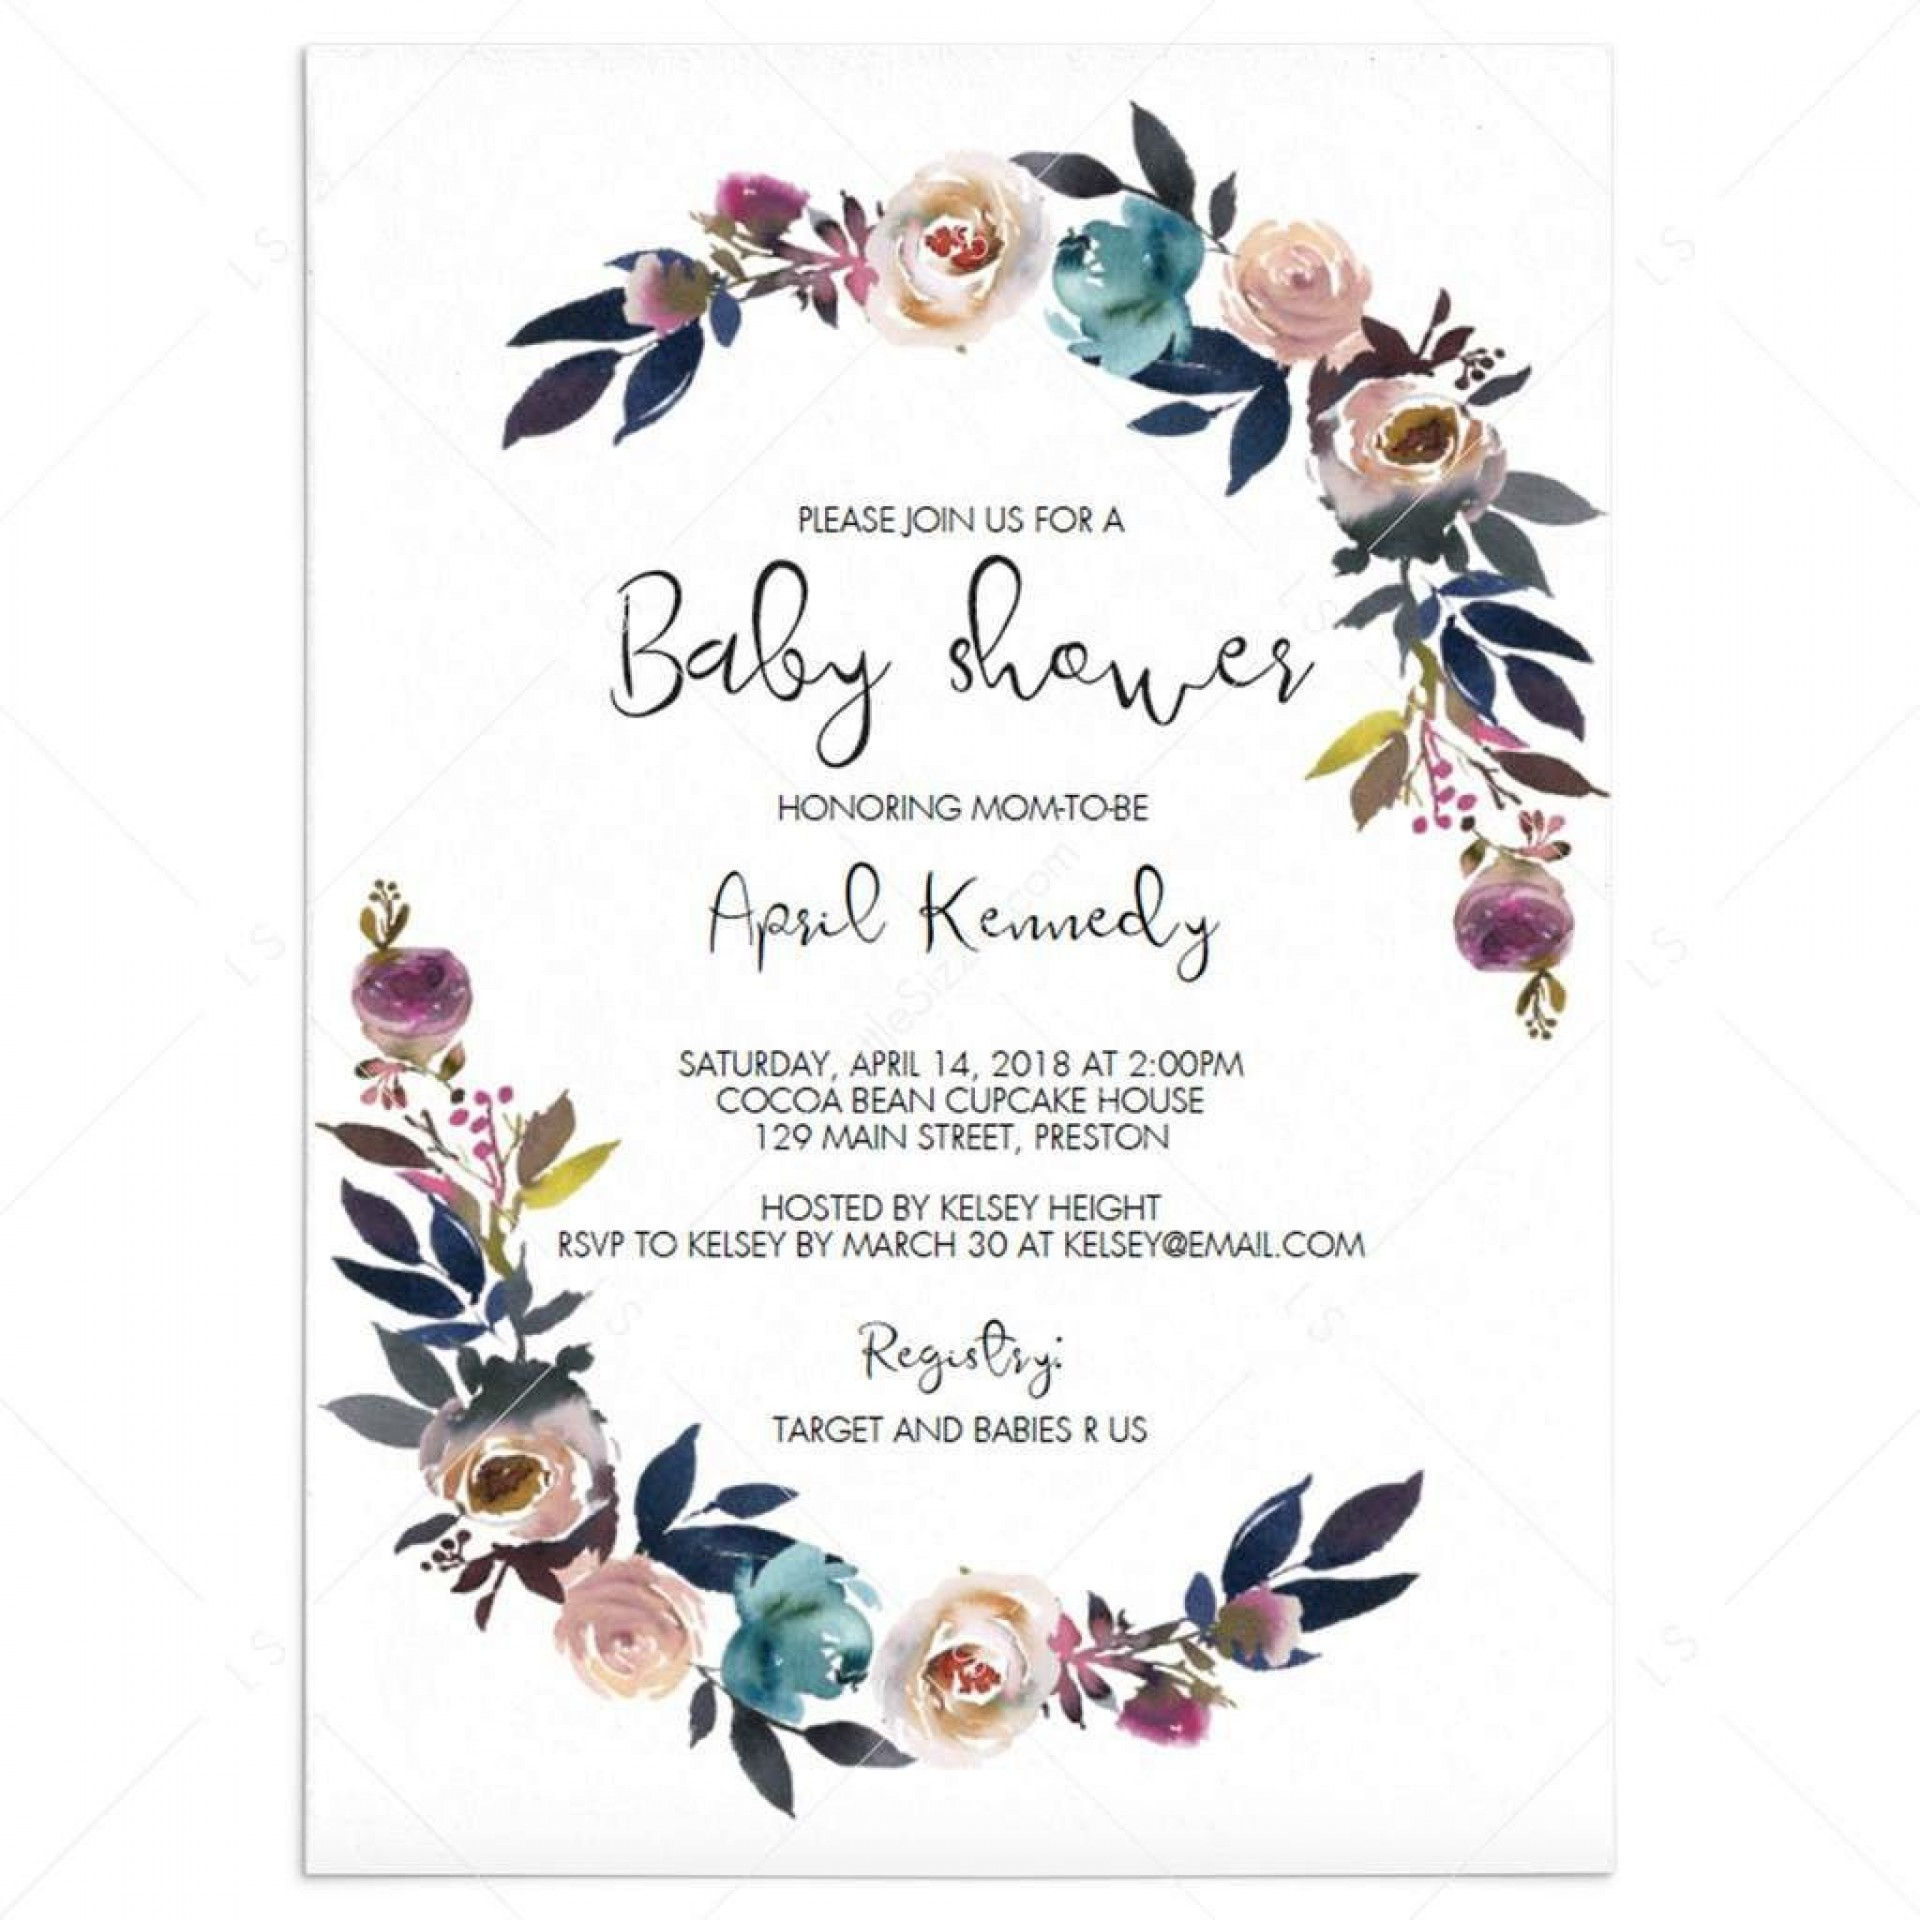 004 Best Free Editable Baby Shower Invitation Template For Word Highest Clarity  Microsoft1920